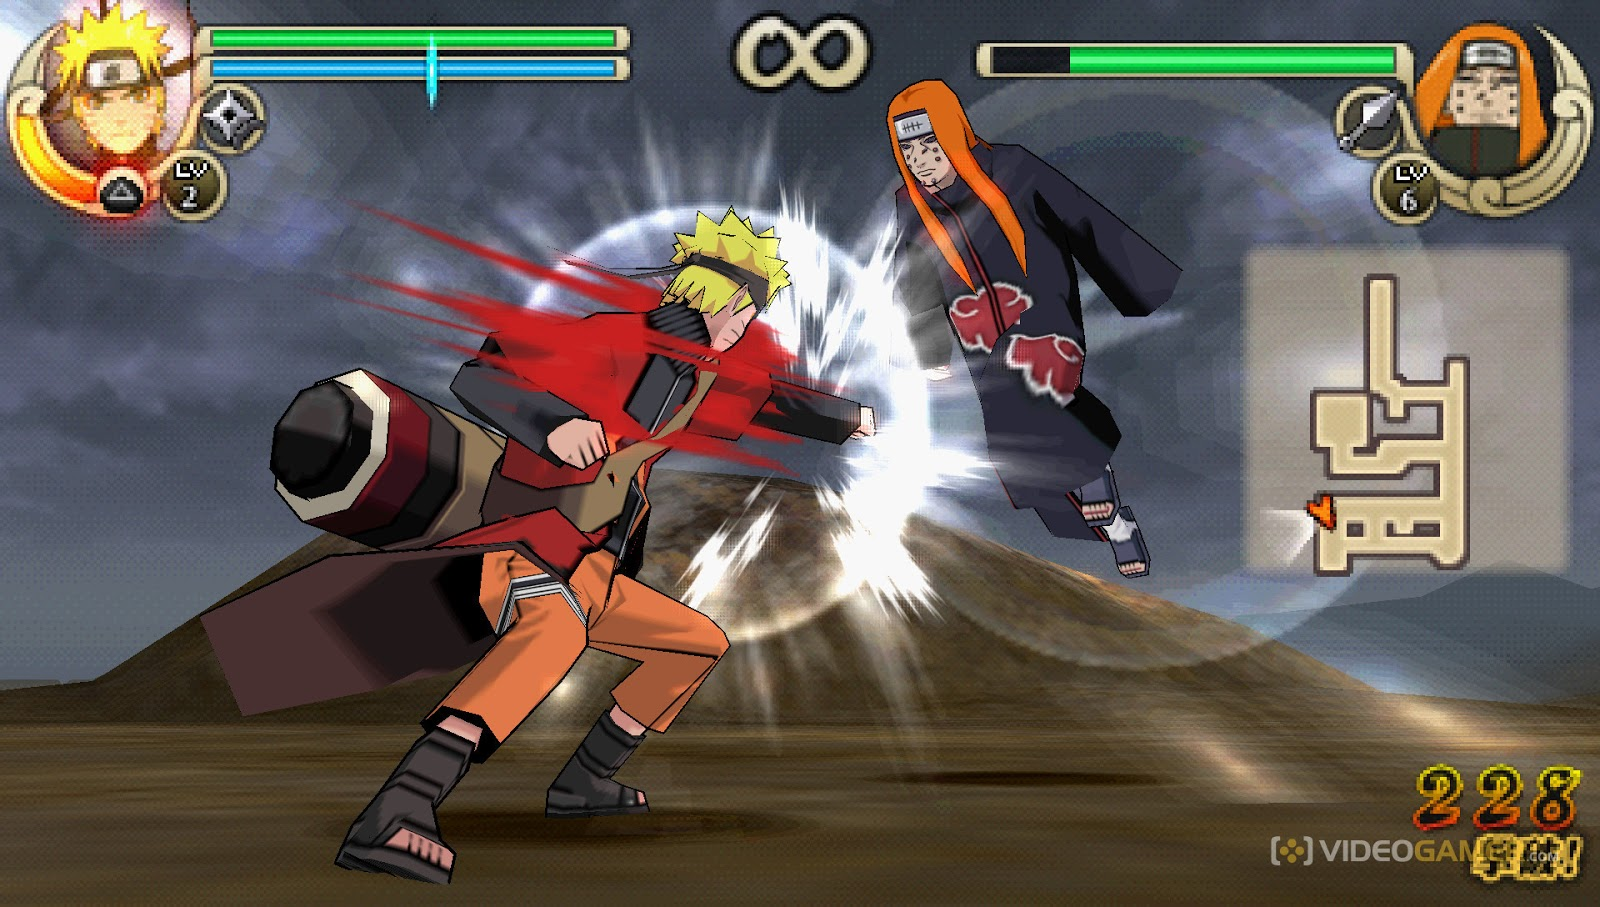 naruto shippuden free download for pc